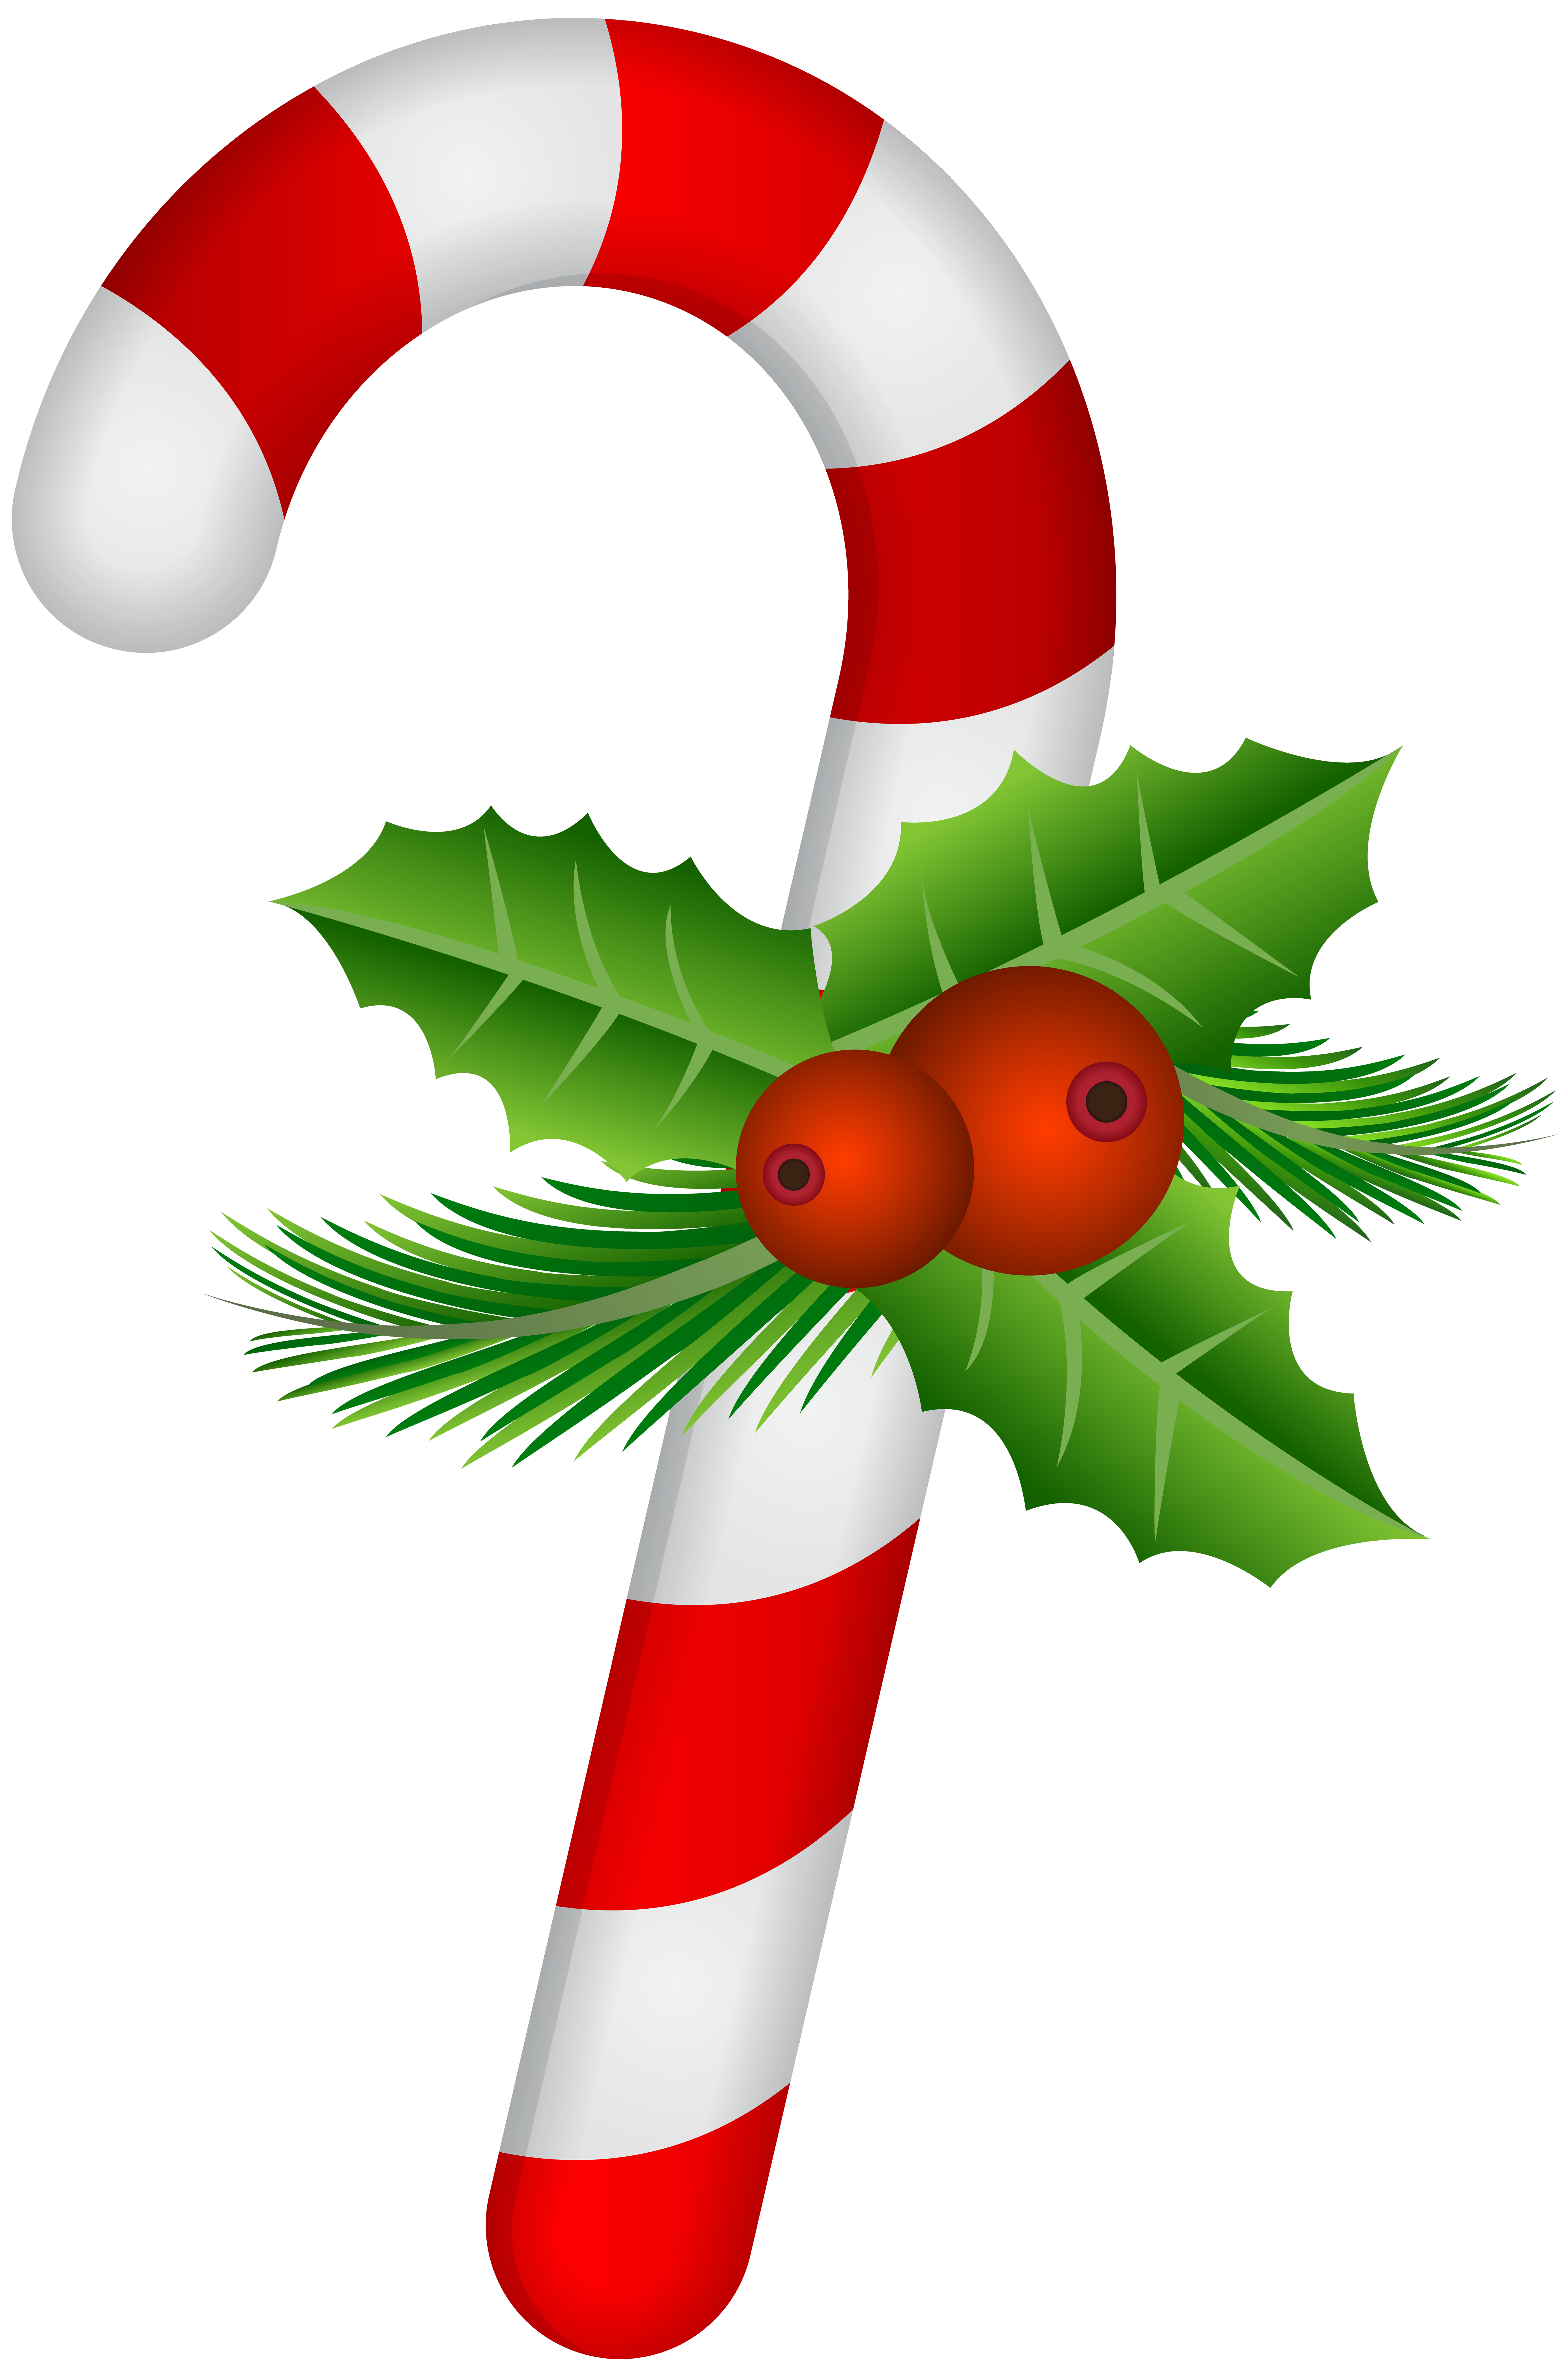 Christmas clipart holly clipart free Candy Cane with Holly Transparent PNG Clip Art | DESSETS CLIP ART ... clipart free